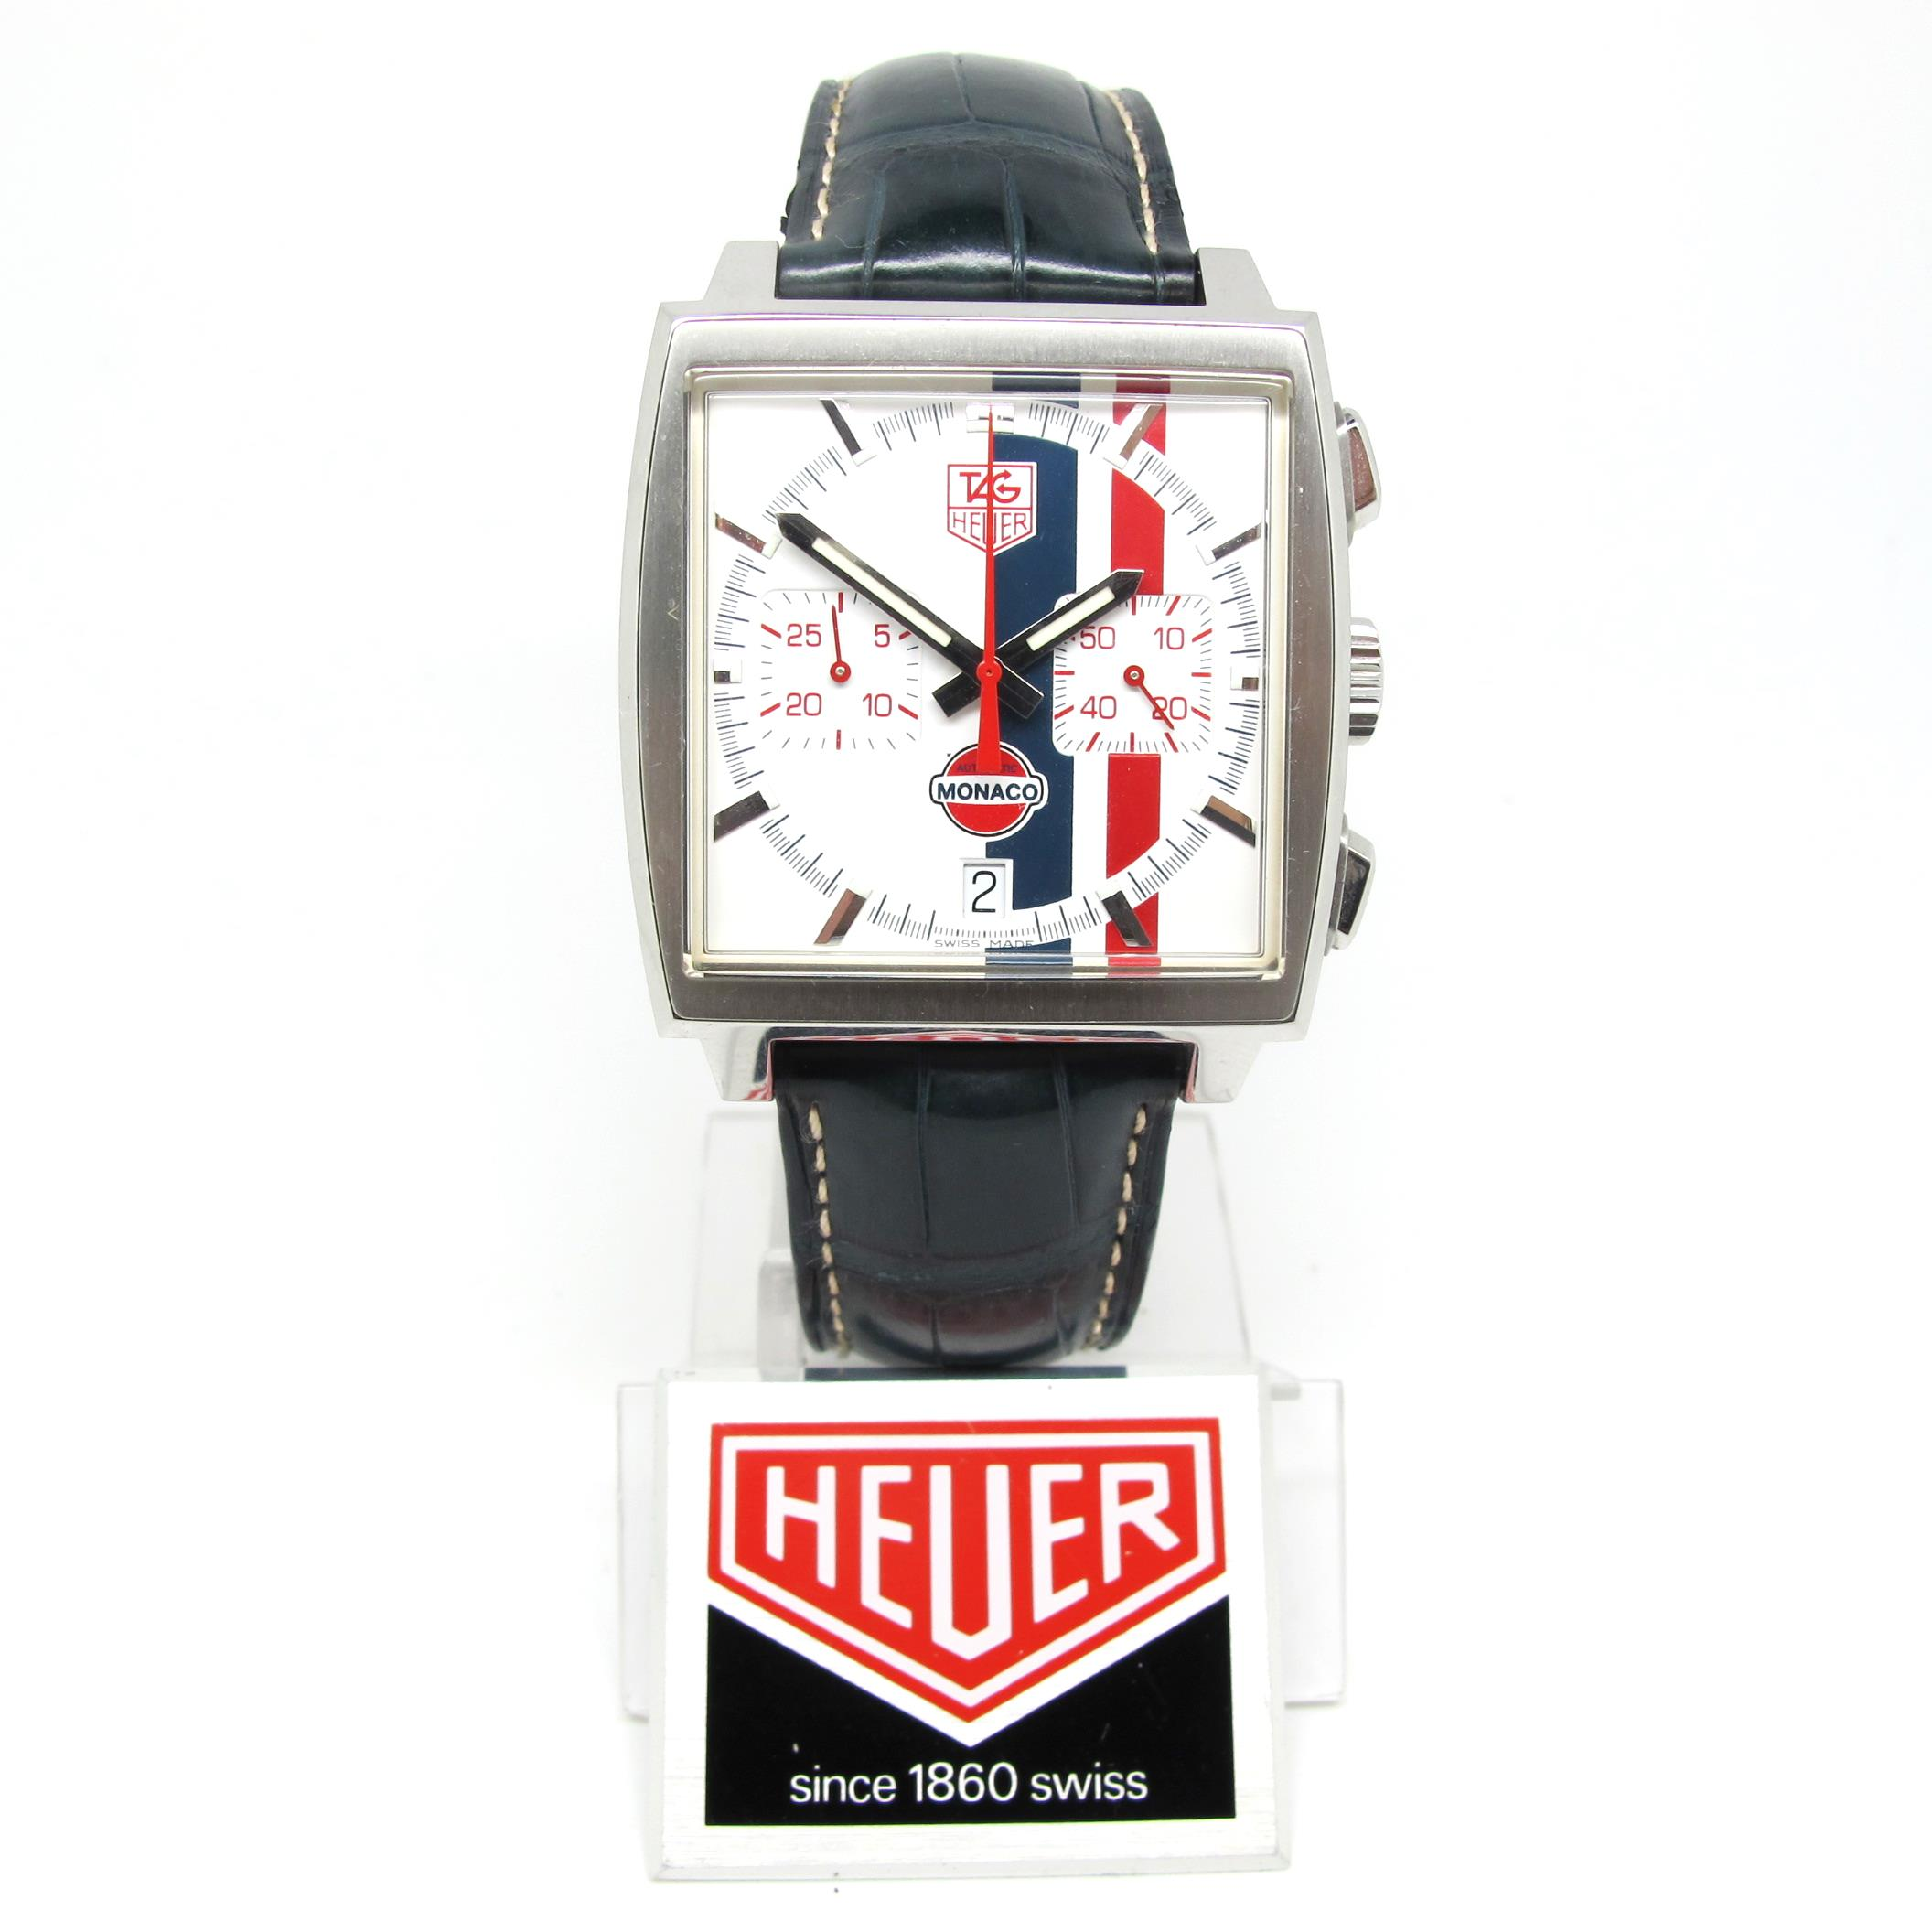 The Steve Mcqueen Le mans sold out limited edition Monaco